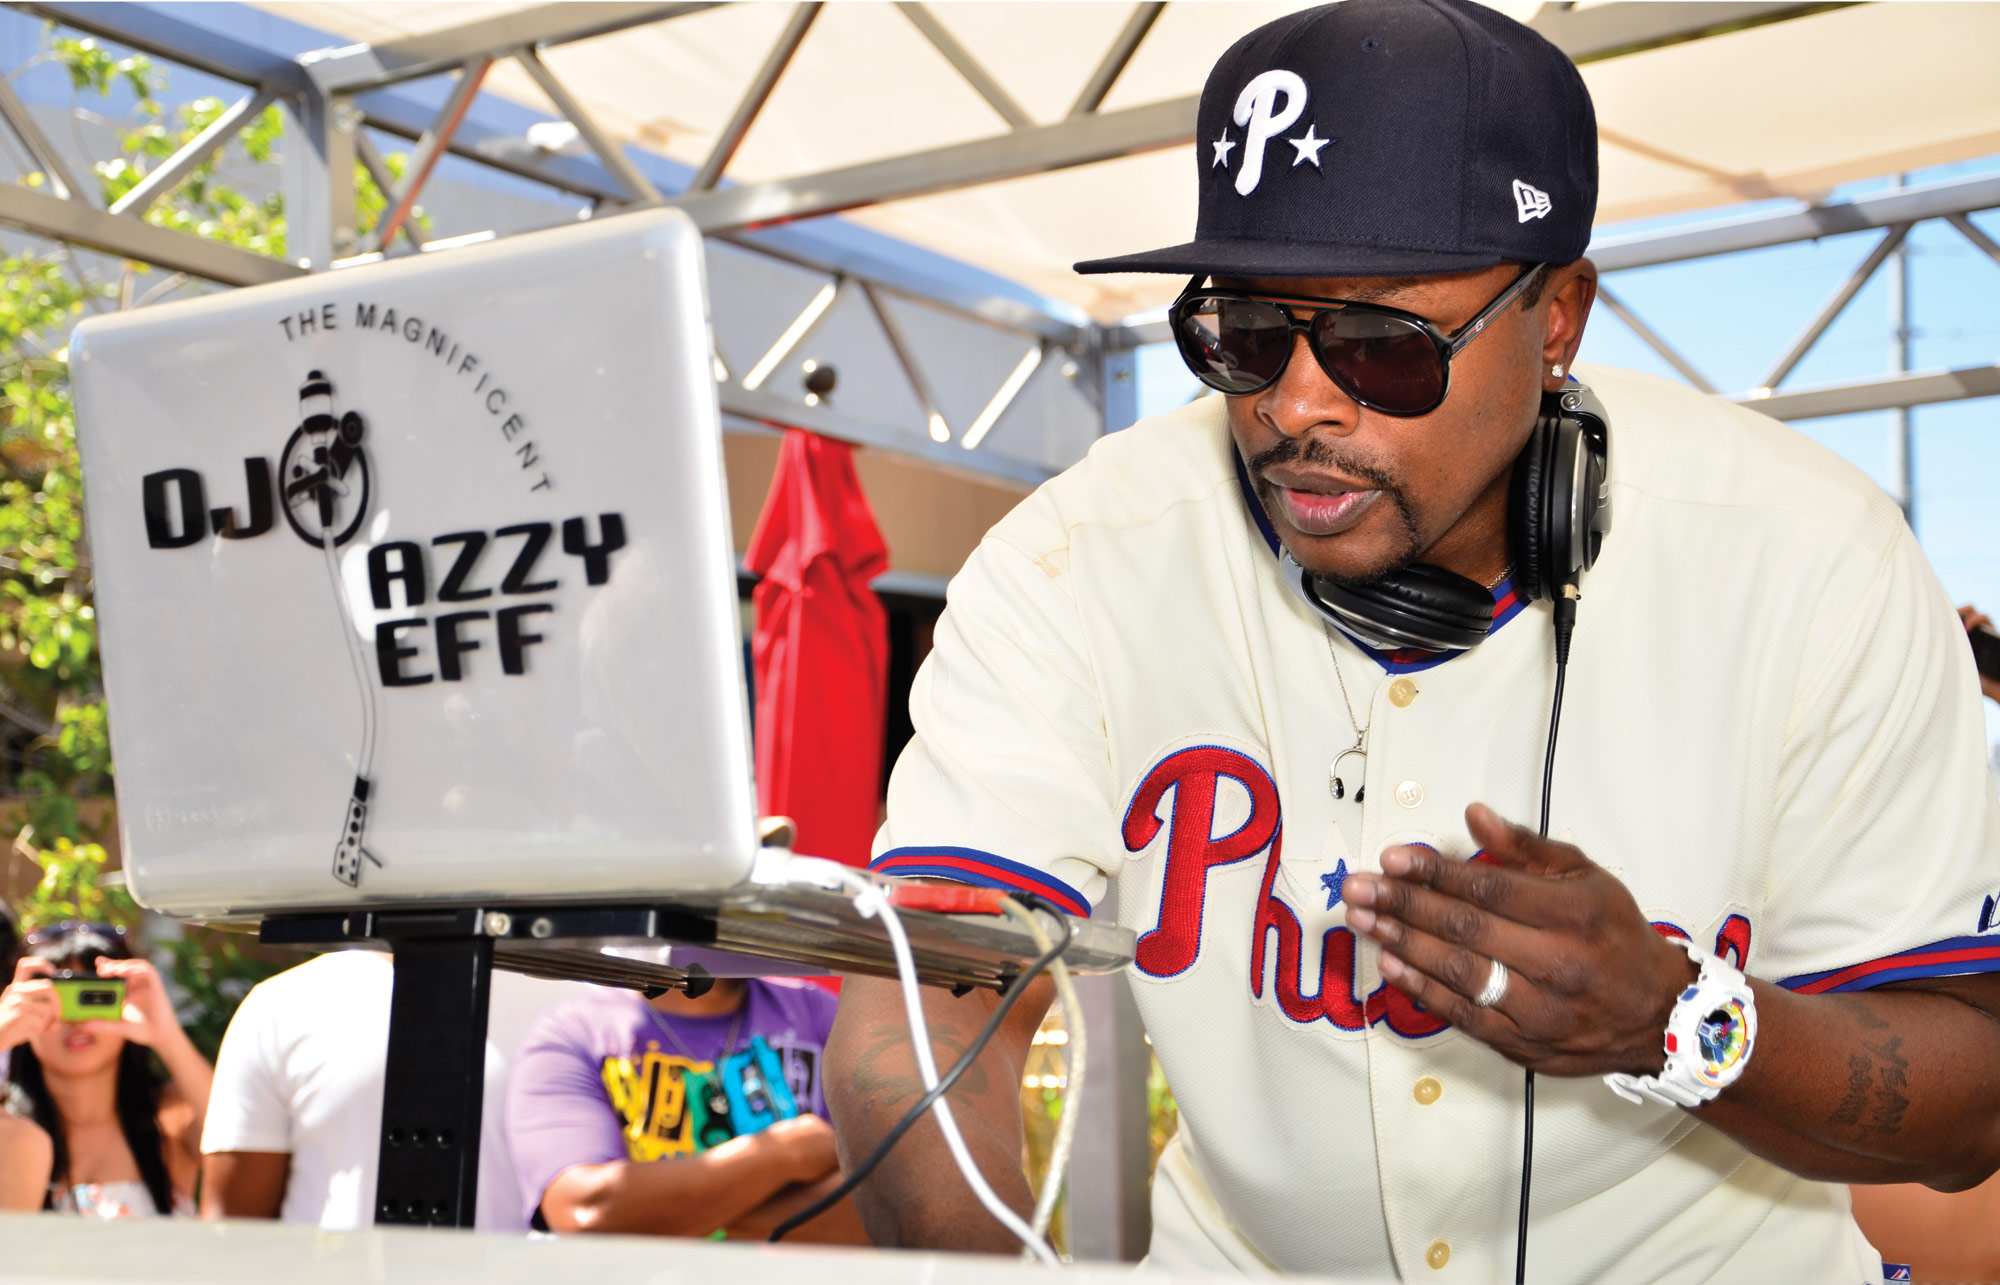 DJ Jazzy Jeff To Headline 'Camden Rising' Concert at DNC July 28th